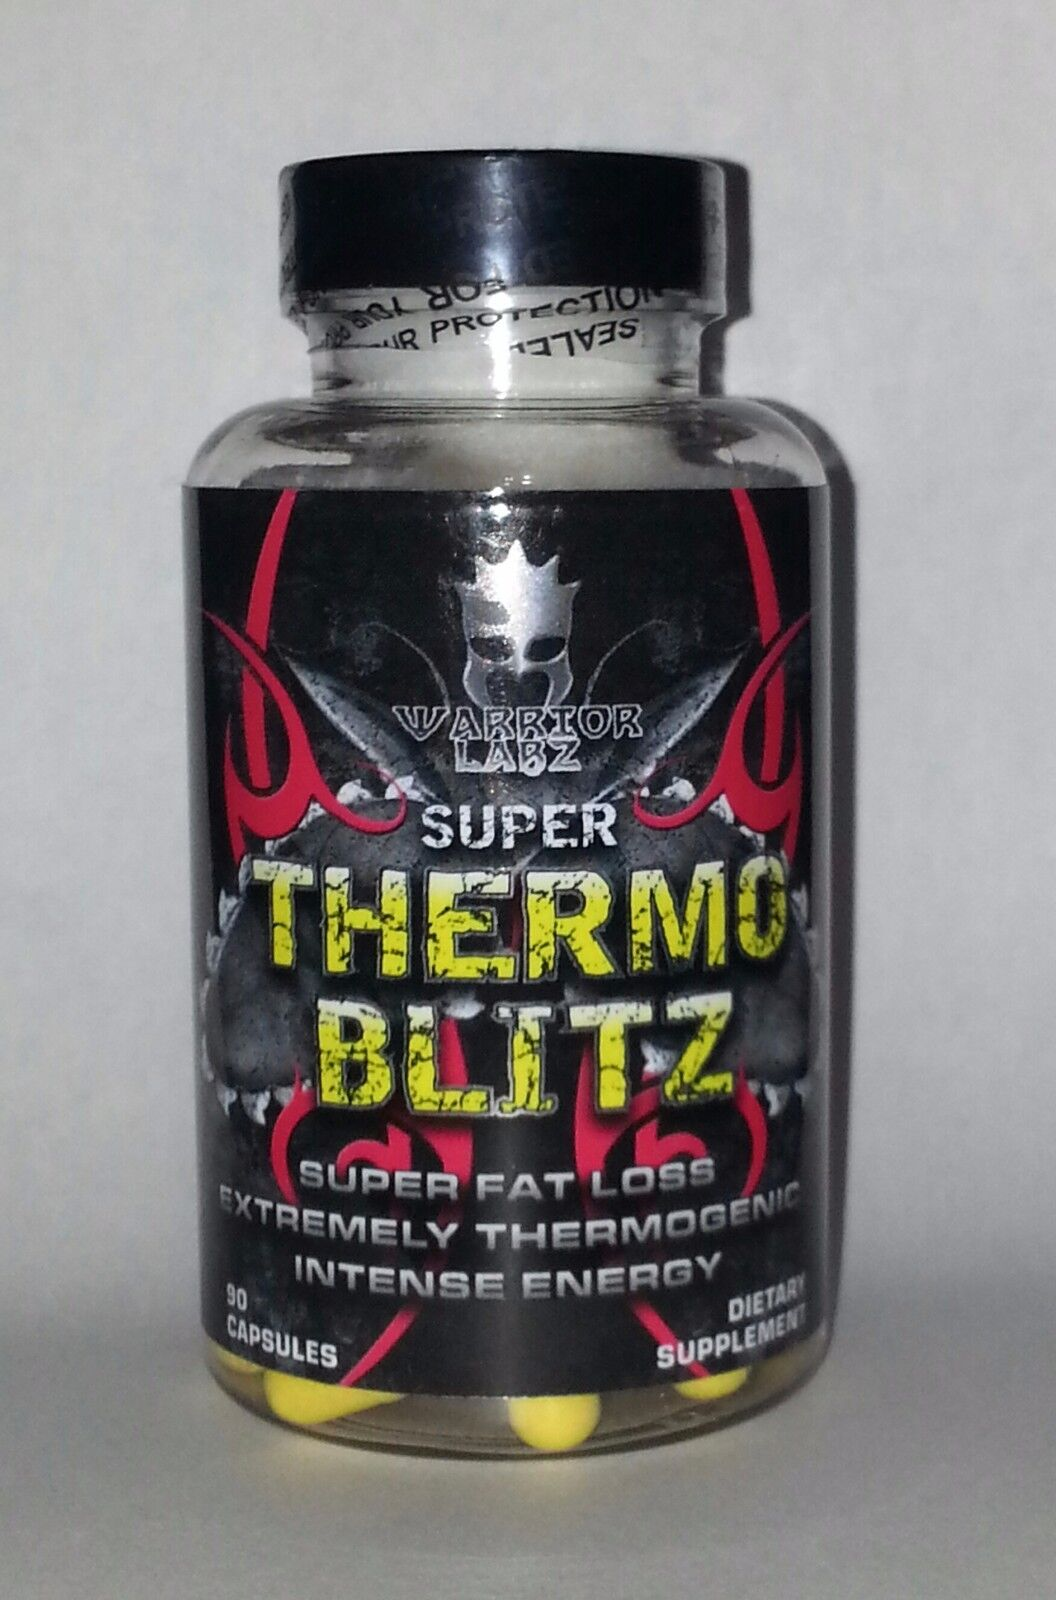 WARRIOR LABZ - - - THERMO BLITZ + FAST FREE SHIPPING - WEIGHT LOSS - LABS 8f6ef0